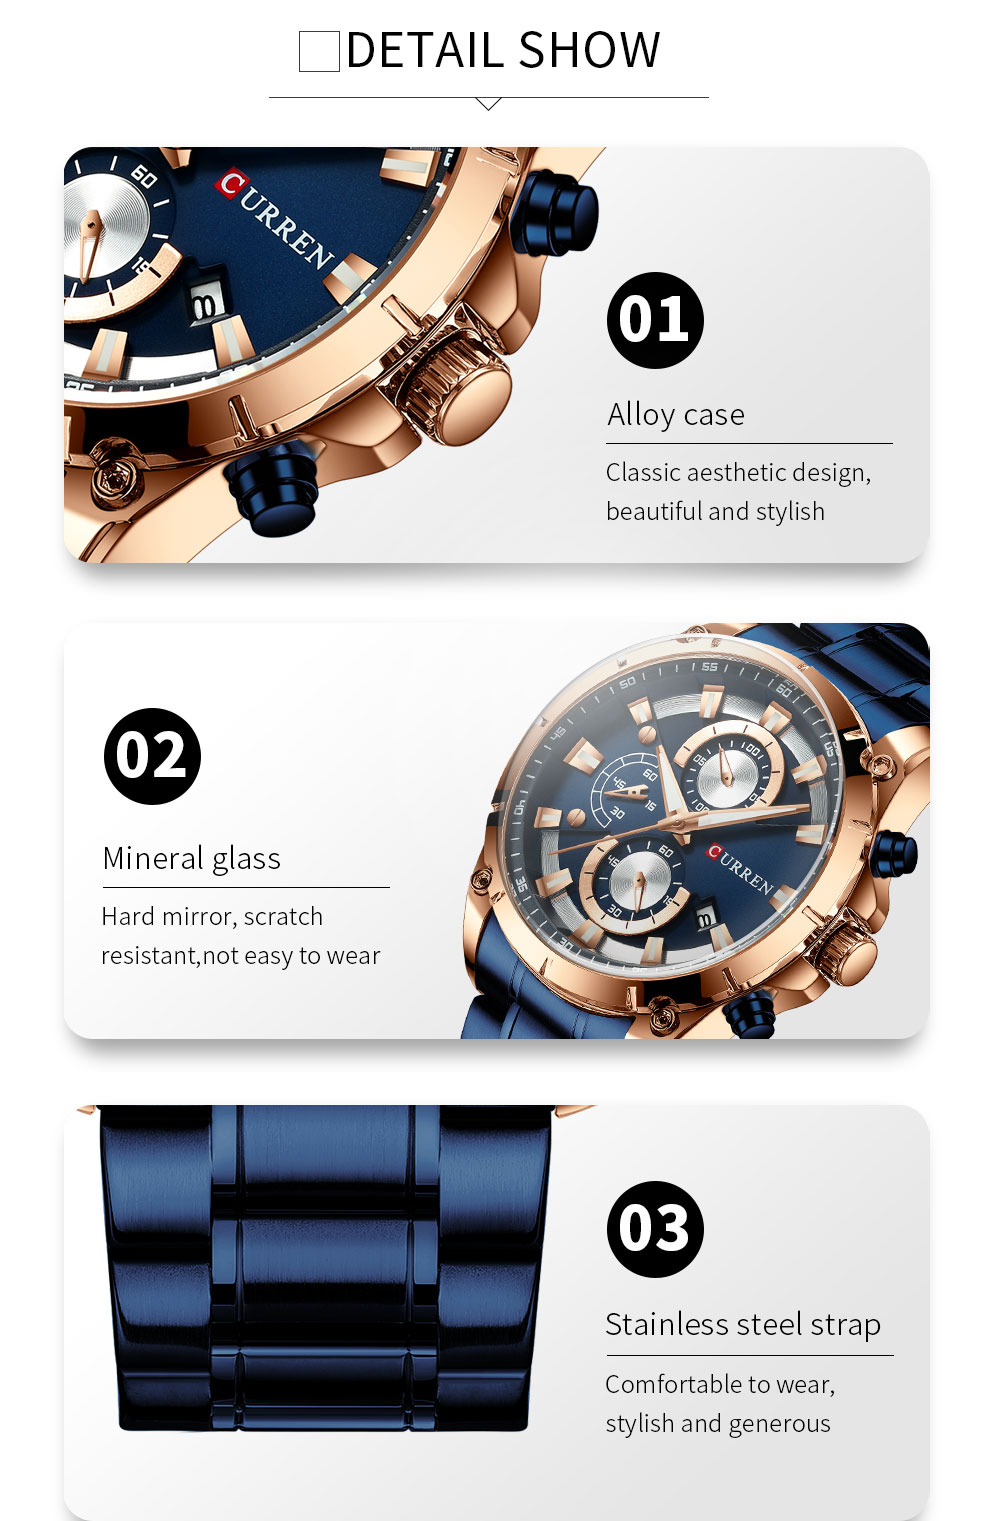 Hf5fe57ad309140779c11a9ff3917b01dx - CURREN Top Brand Luxury Men Watches Sporty Stainless Steel Band Chronograph Quartz Wristwatch with Auto Date Relogio Masculino